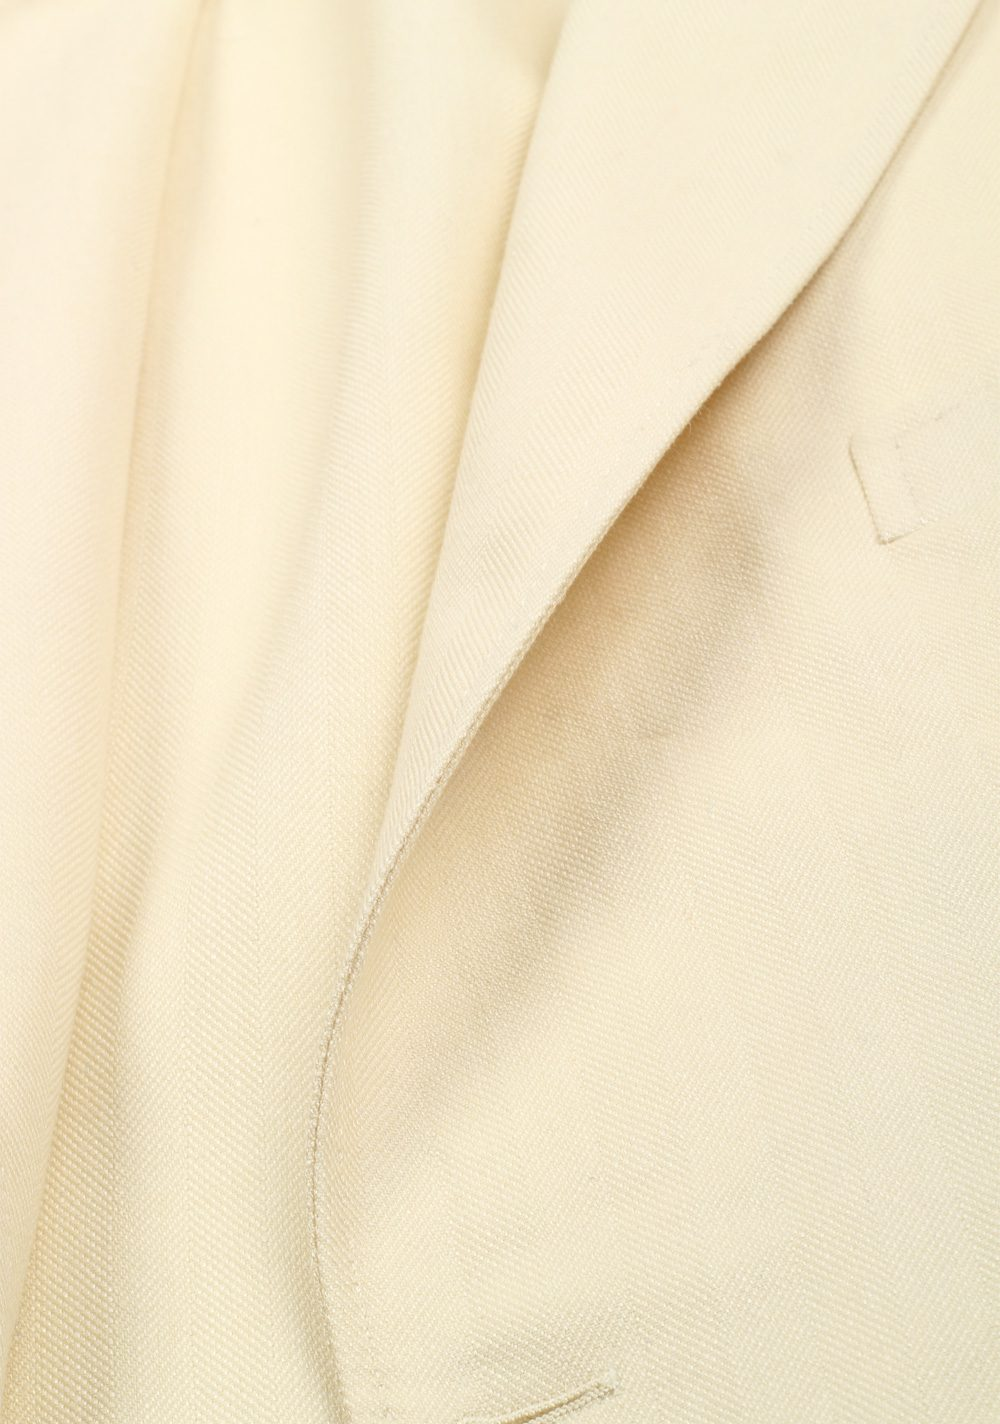 TOM FORD Shelton Off White Sport Coat Size 54 / 44R U.S. Mohair Silk Wool | Costume Limité